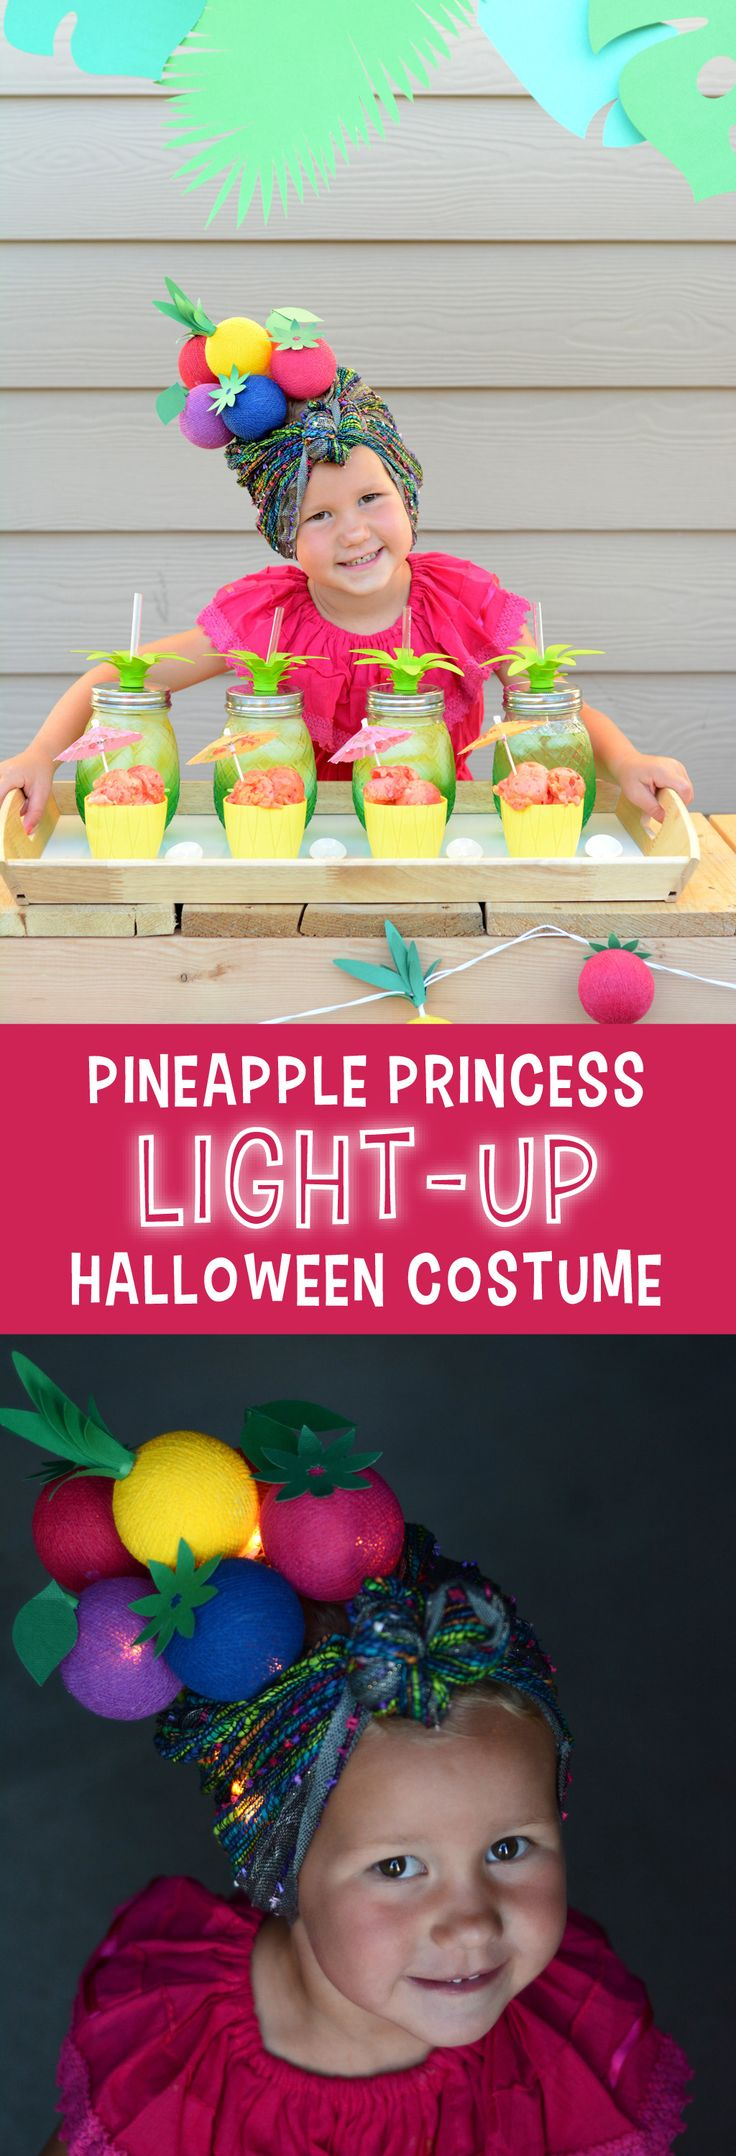 DIY Pineapple Princess Light Up Halloween Costume | A simple, pineapple princess light-up halloween costume that will help you see your little trick-or-treater on Halloween night.